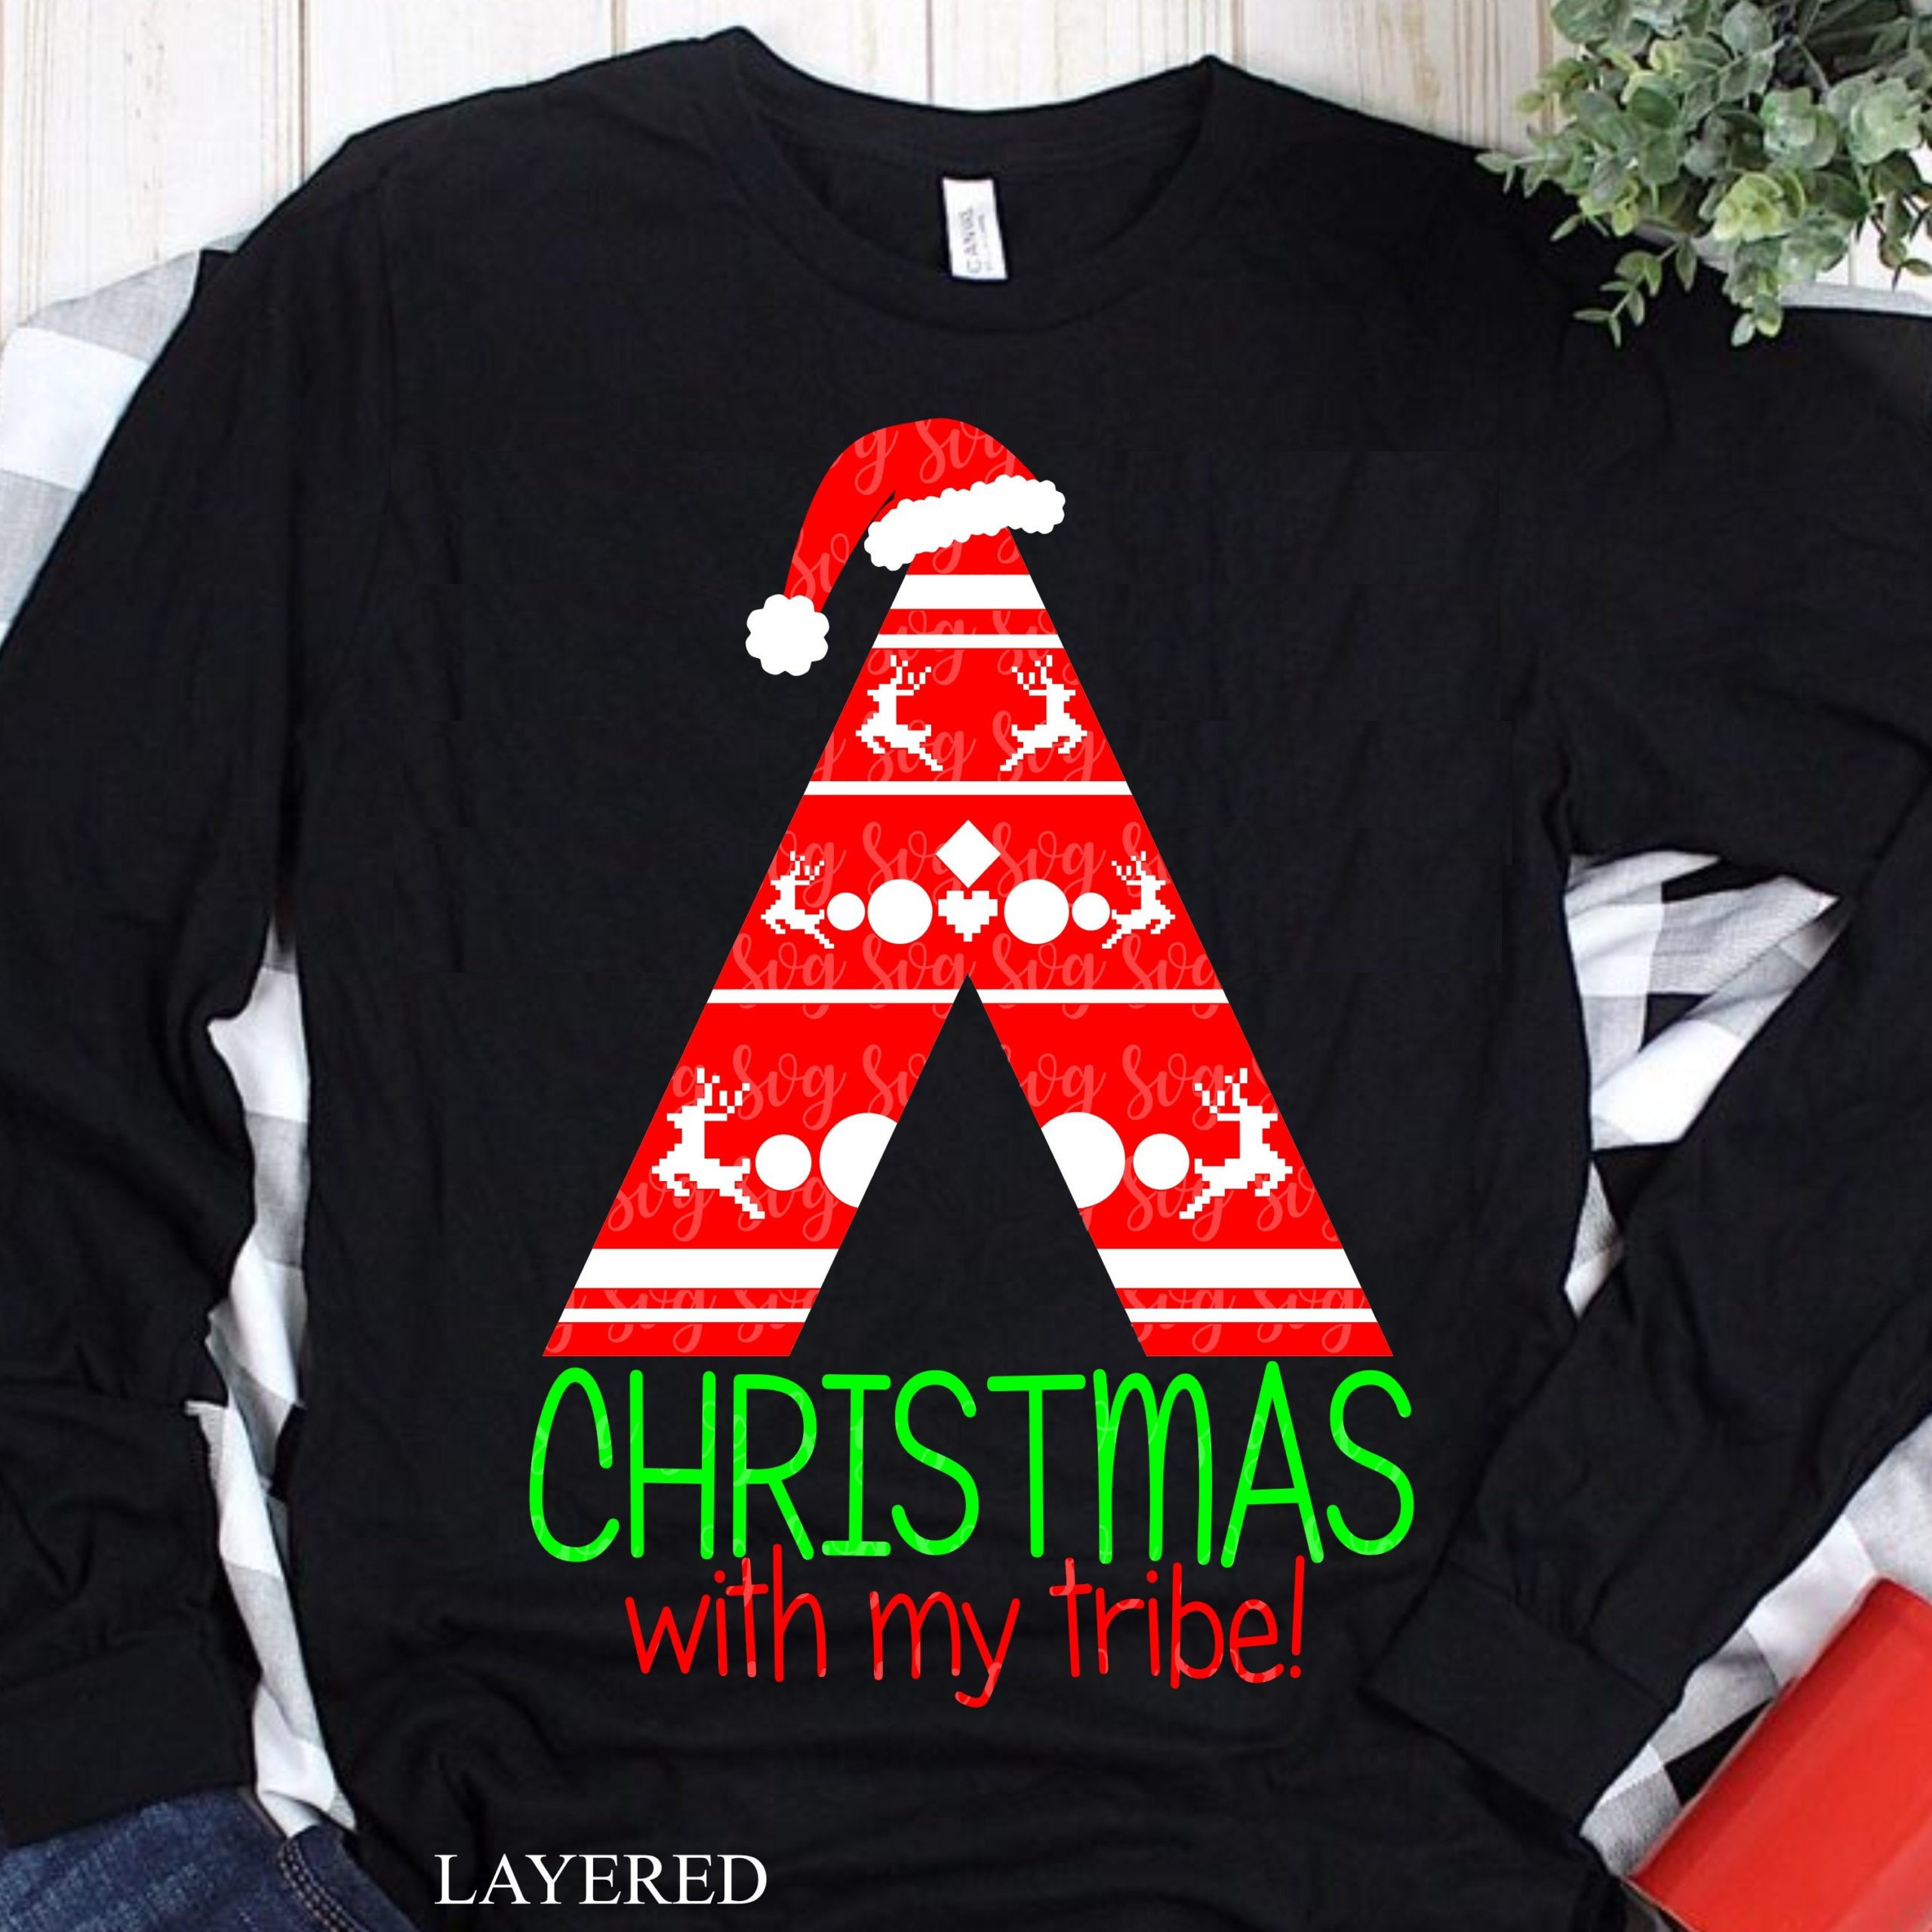 Christmas Svg Christmas With My Tribe Svg Christmas With The Tribe Svg Dxf Eps Tribe Svg Iron On Digital Download Svg For Cricut Svg For Cricut